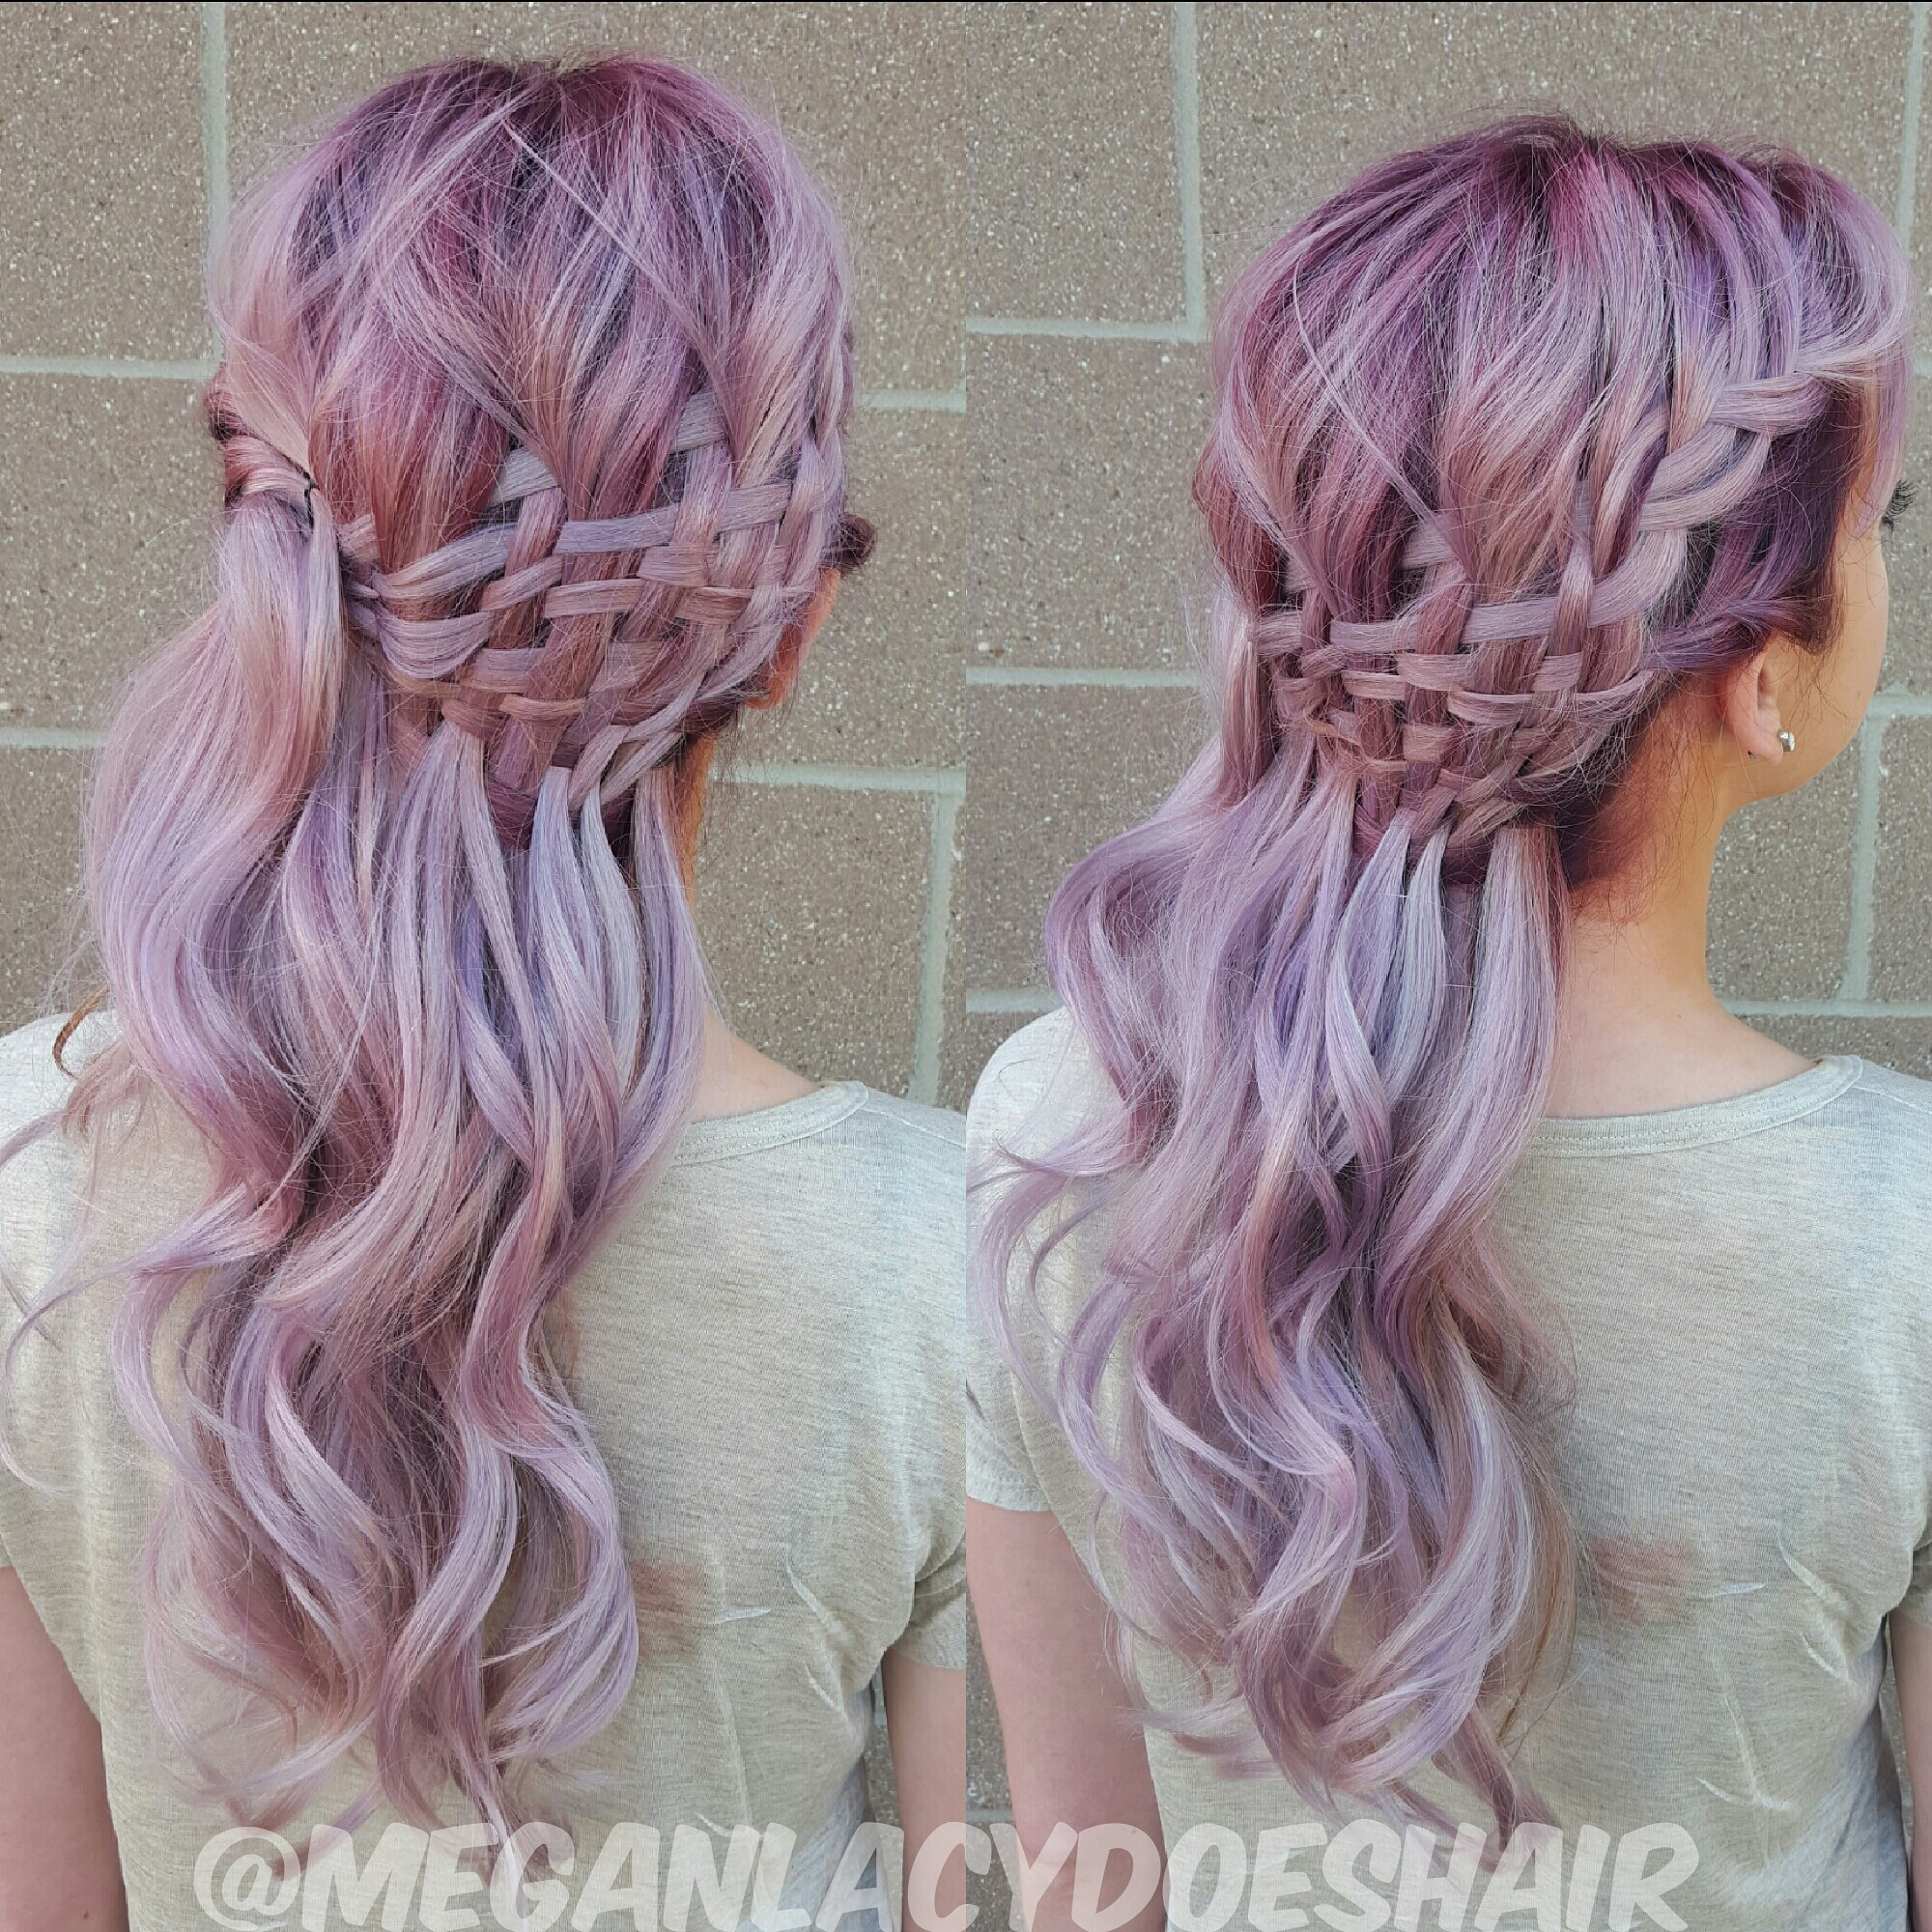 HOW-TO: 'Contoured' Lavender Color and Style